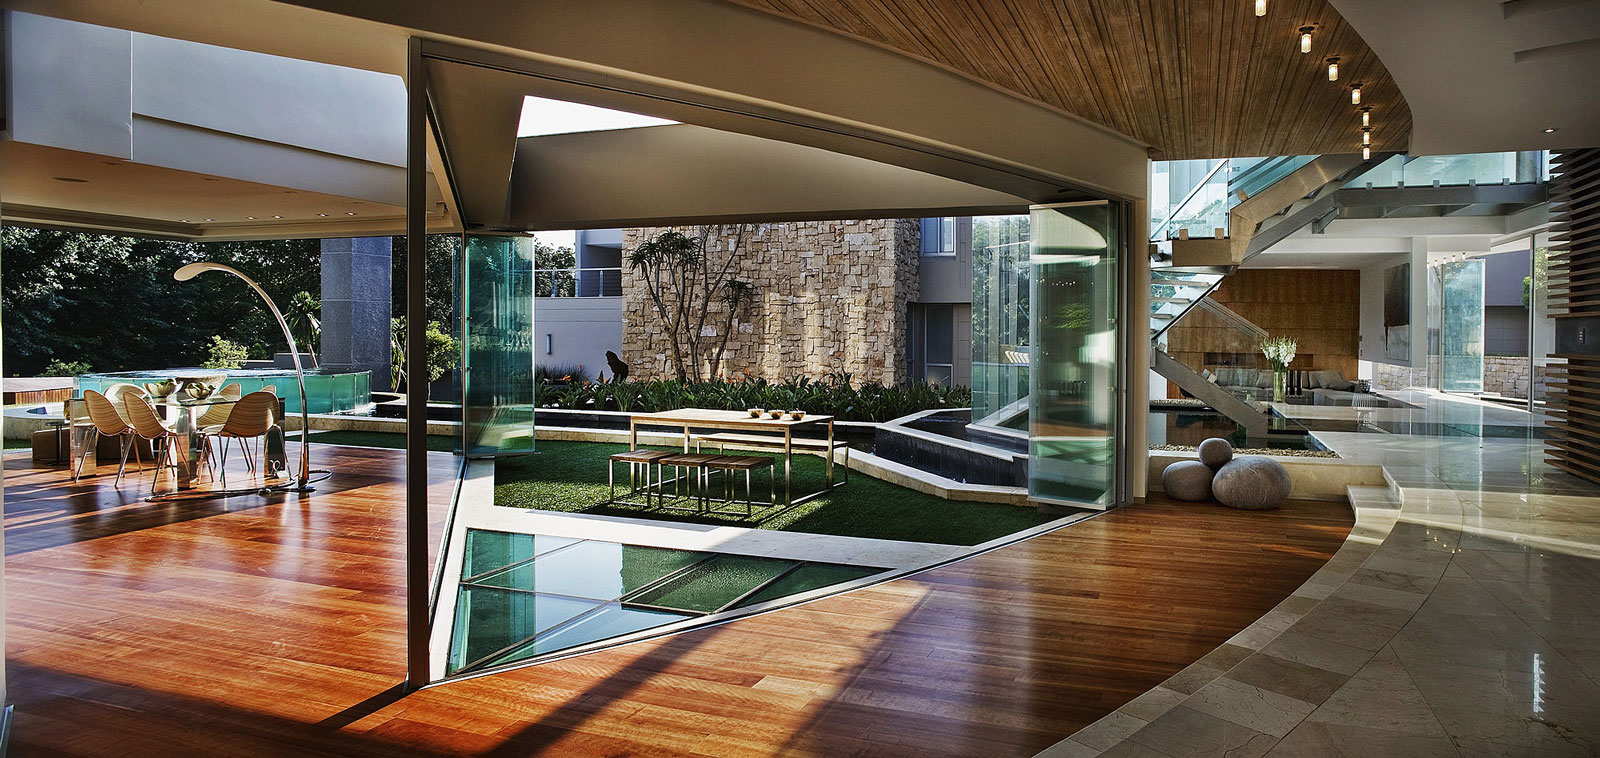 Out of a dream glass house by nico van der meulen architects 11